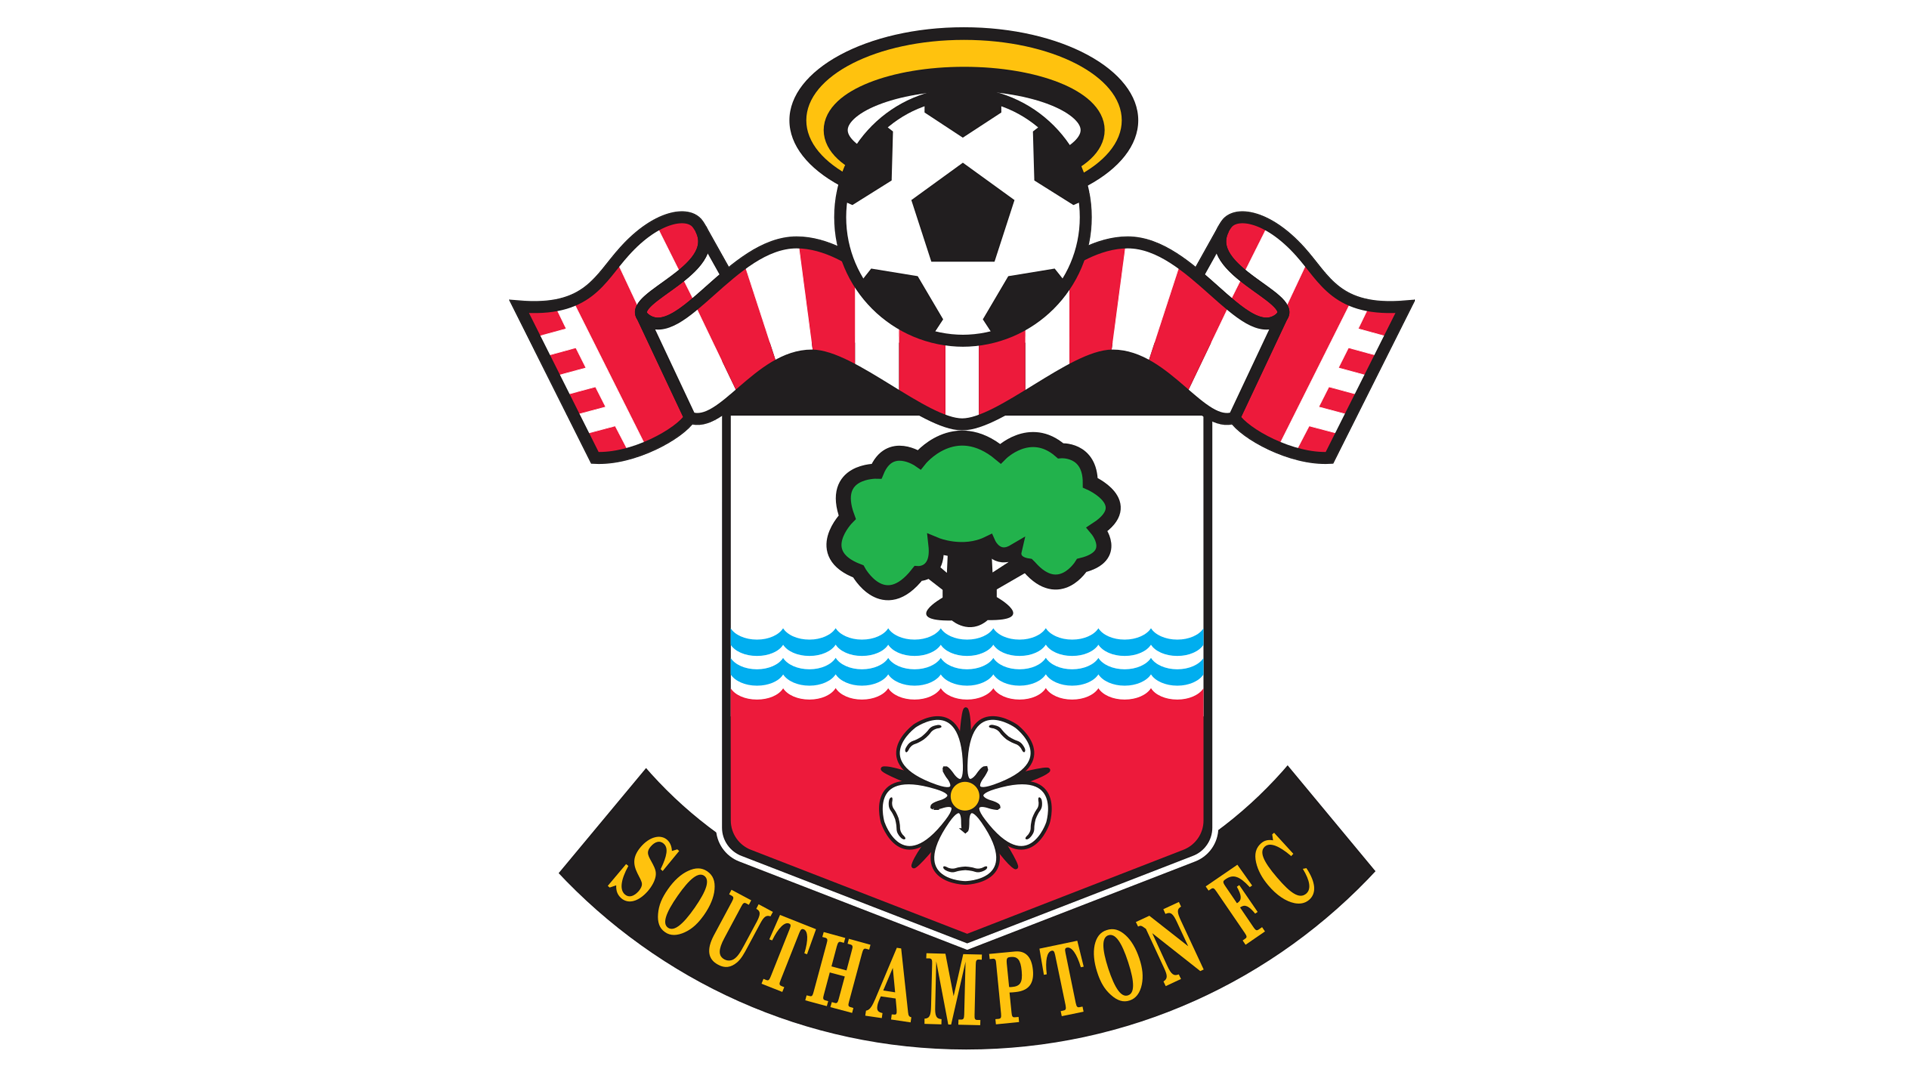 Southampton Logo And Symbol Meaning History Png